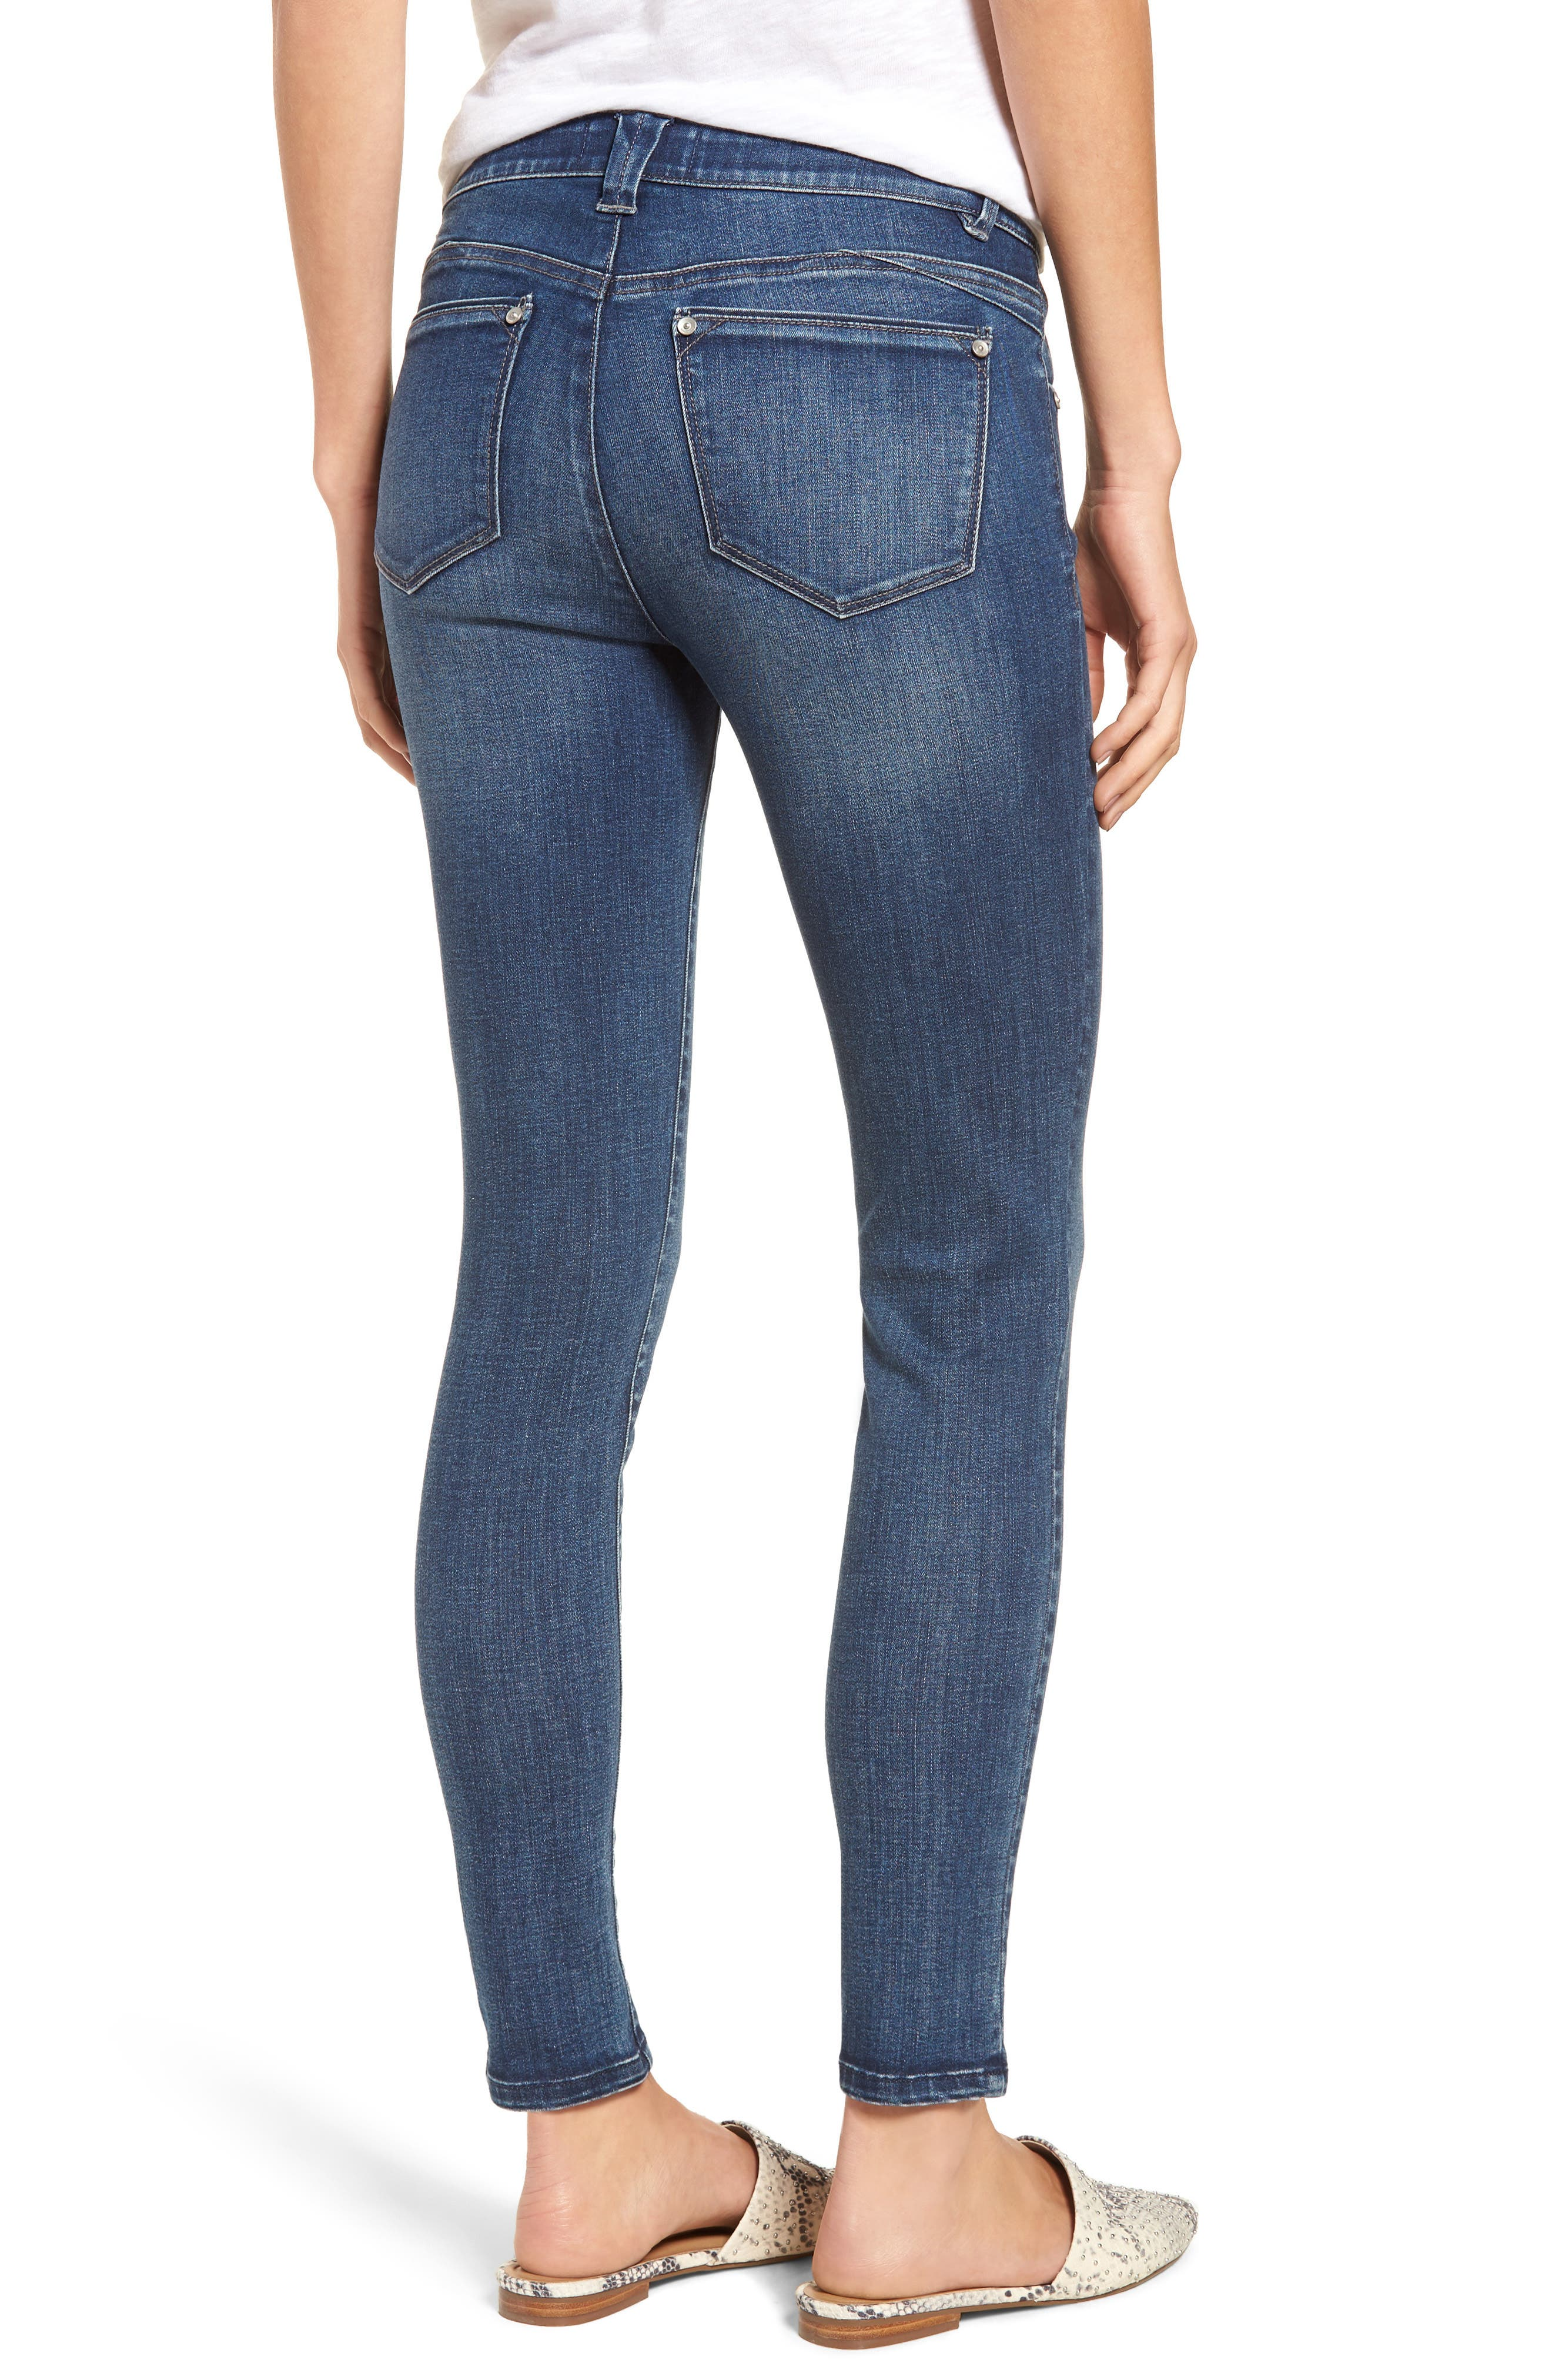 Ab-solution Ankle Skinny Jeans,                             Alternate thumbnail 2, color,                             BLUE